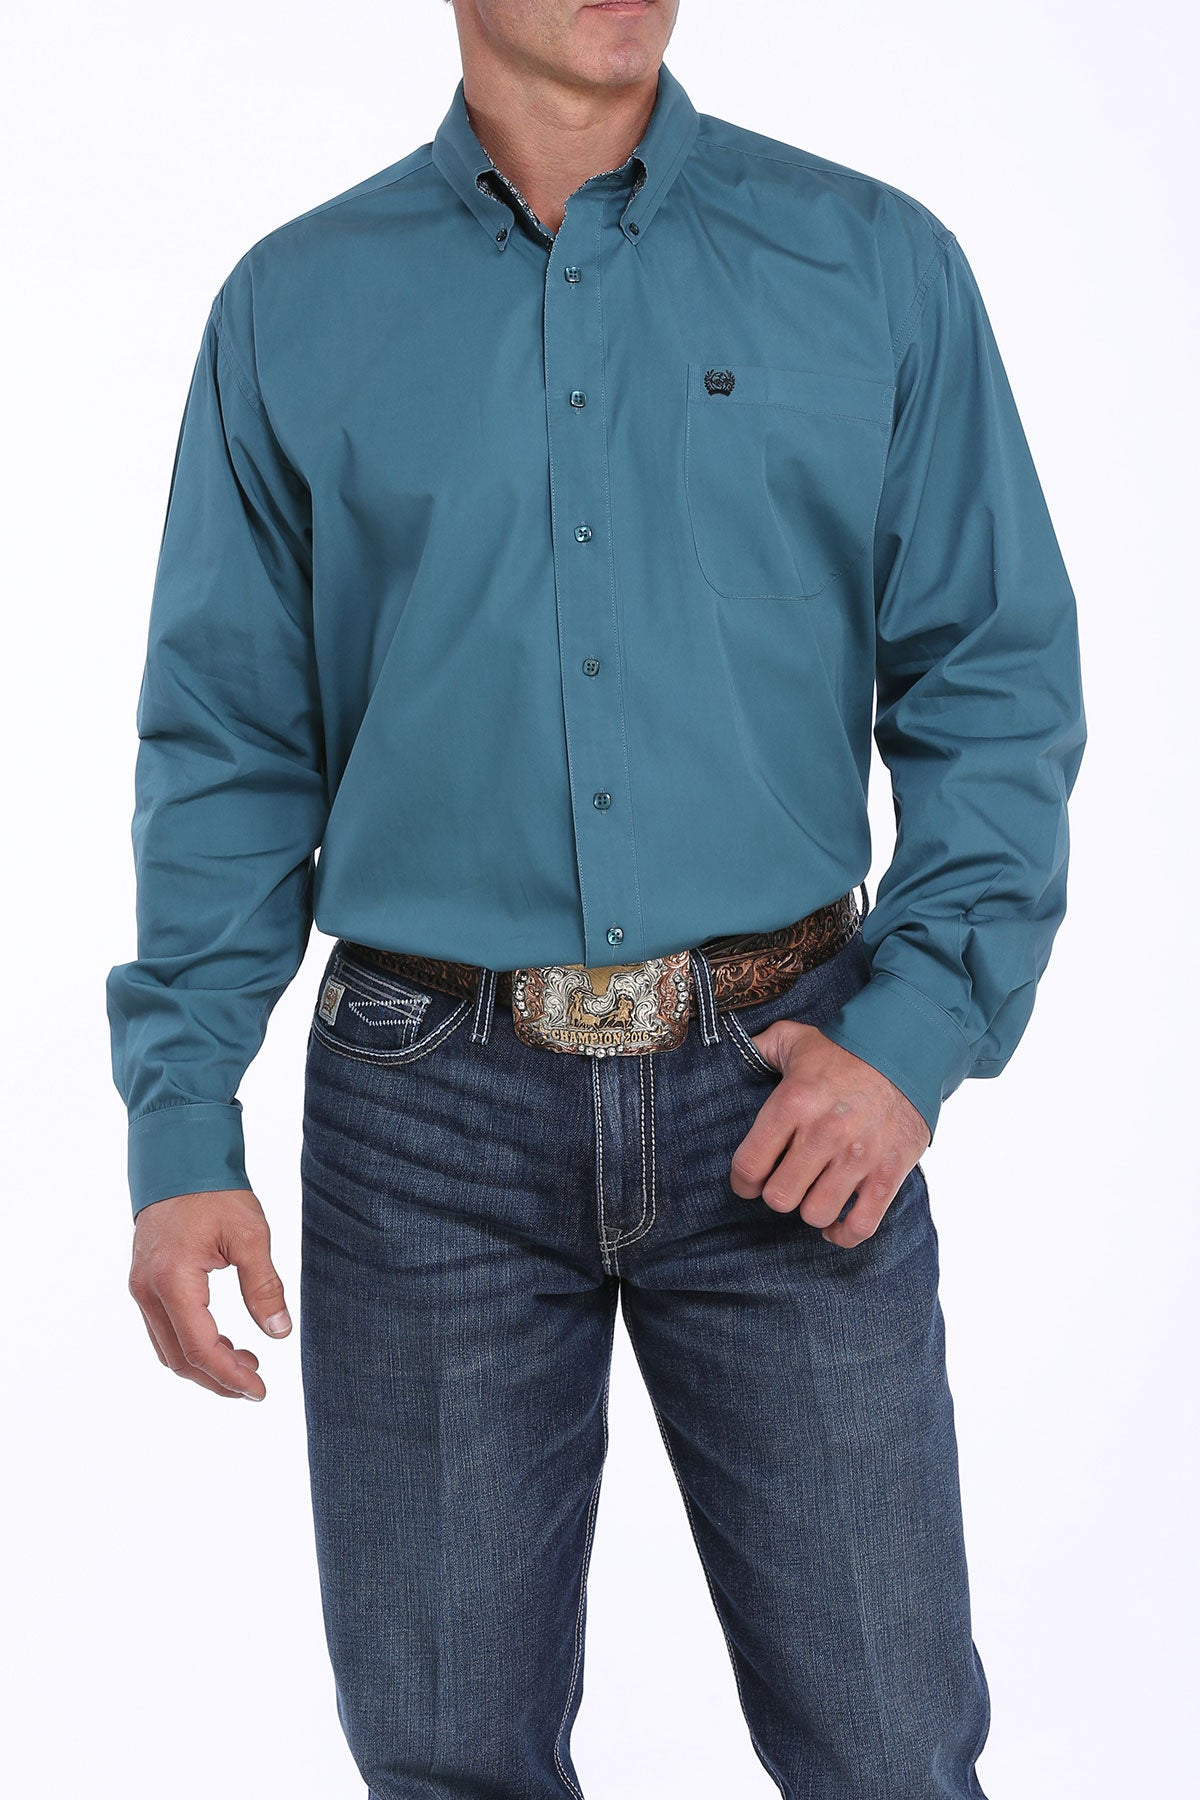 Cinch Teal Contrast Cuff Men's Button Down